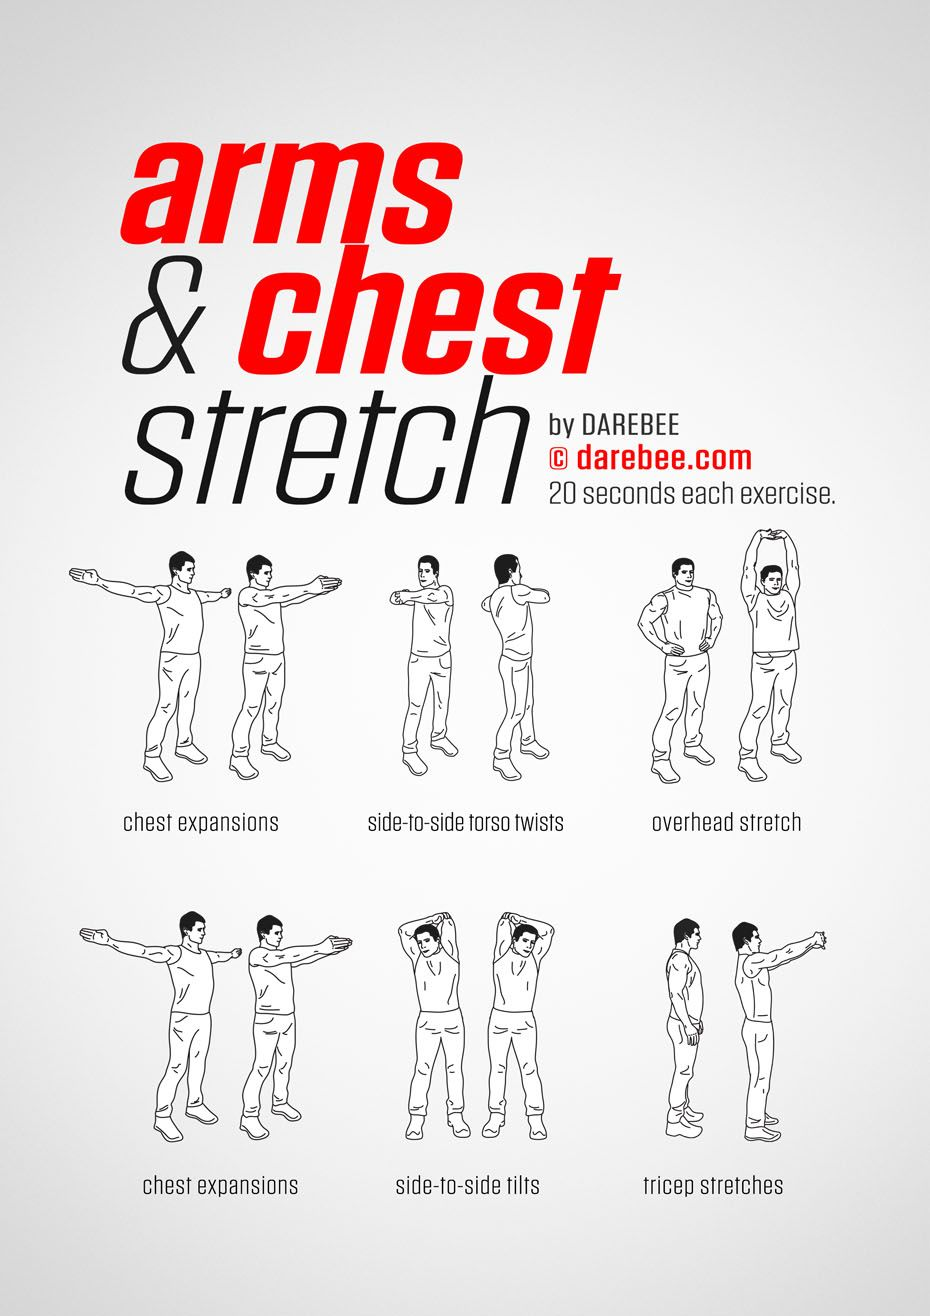 Arms & Chest Workout Easy yoga workouts, Lower back